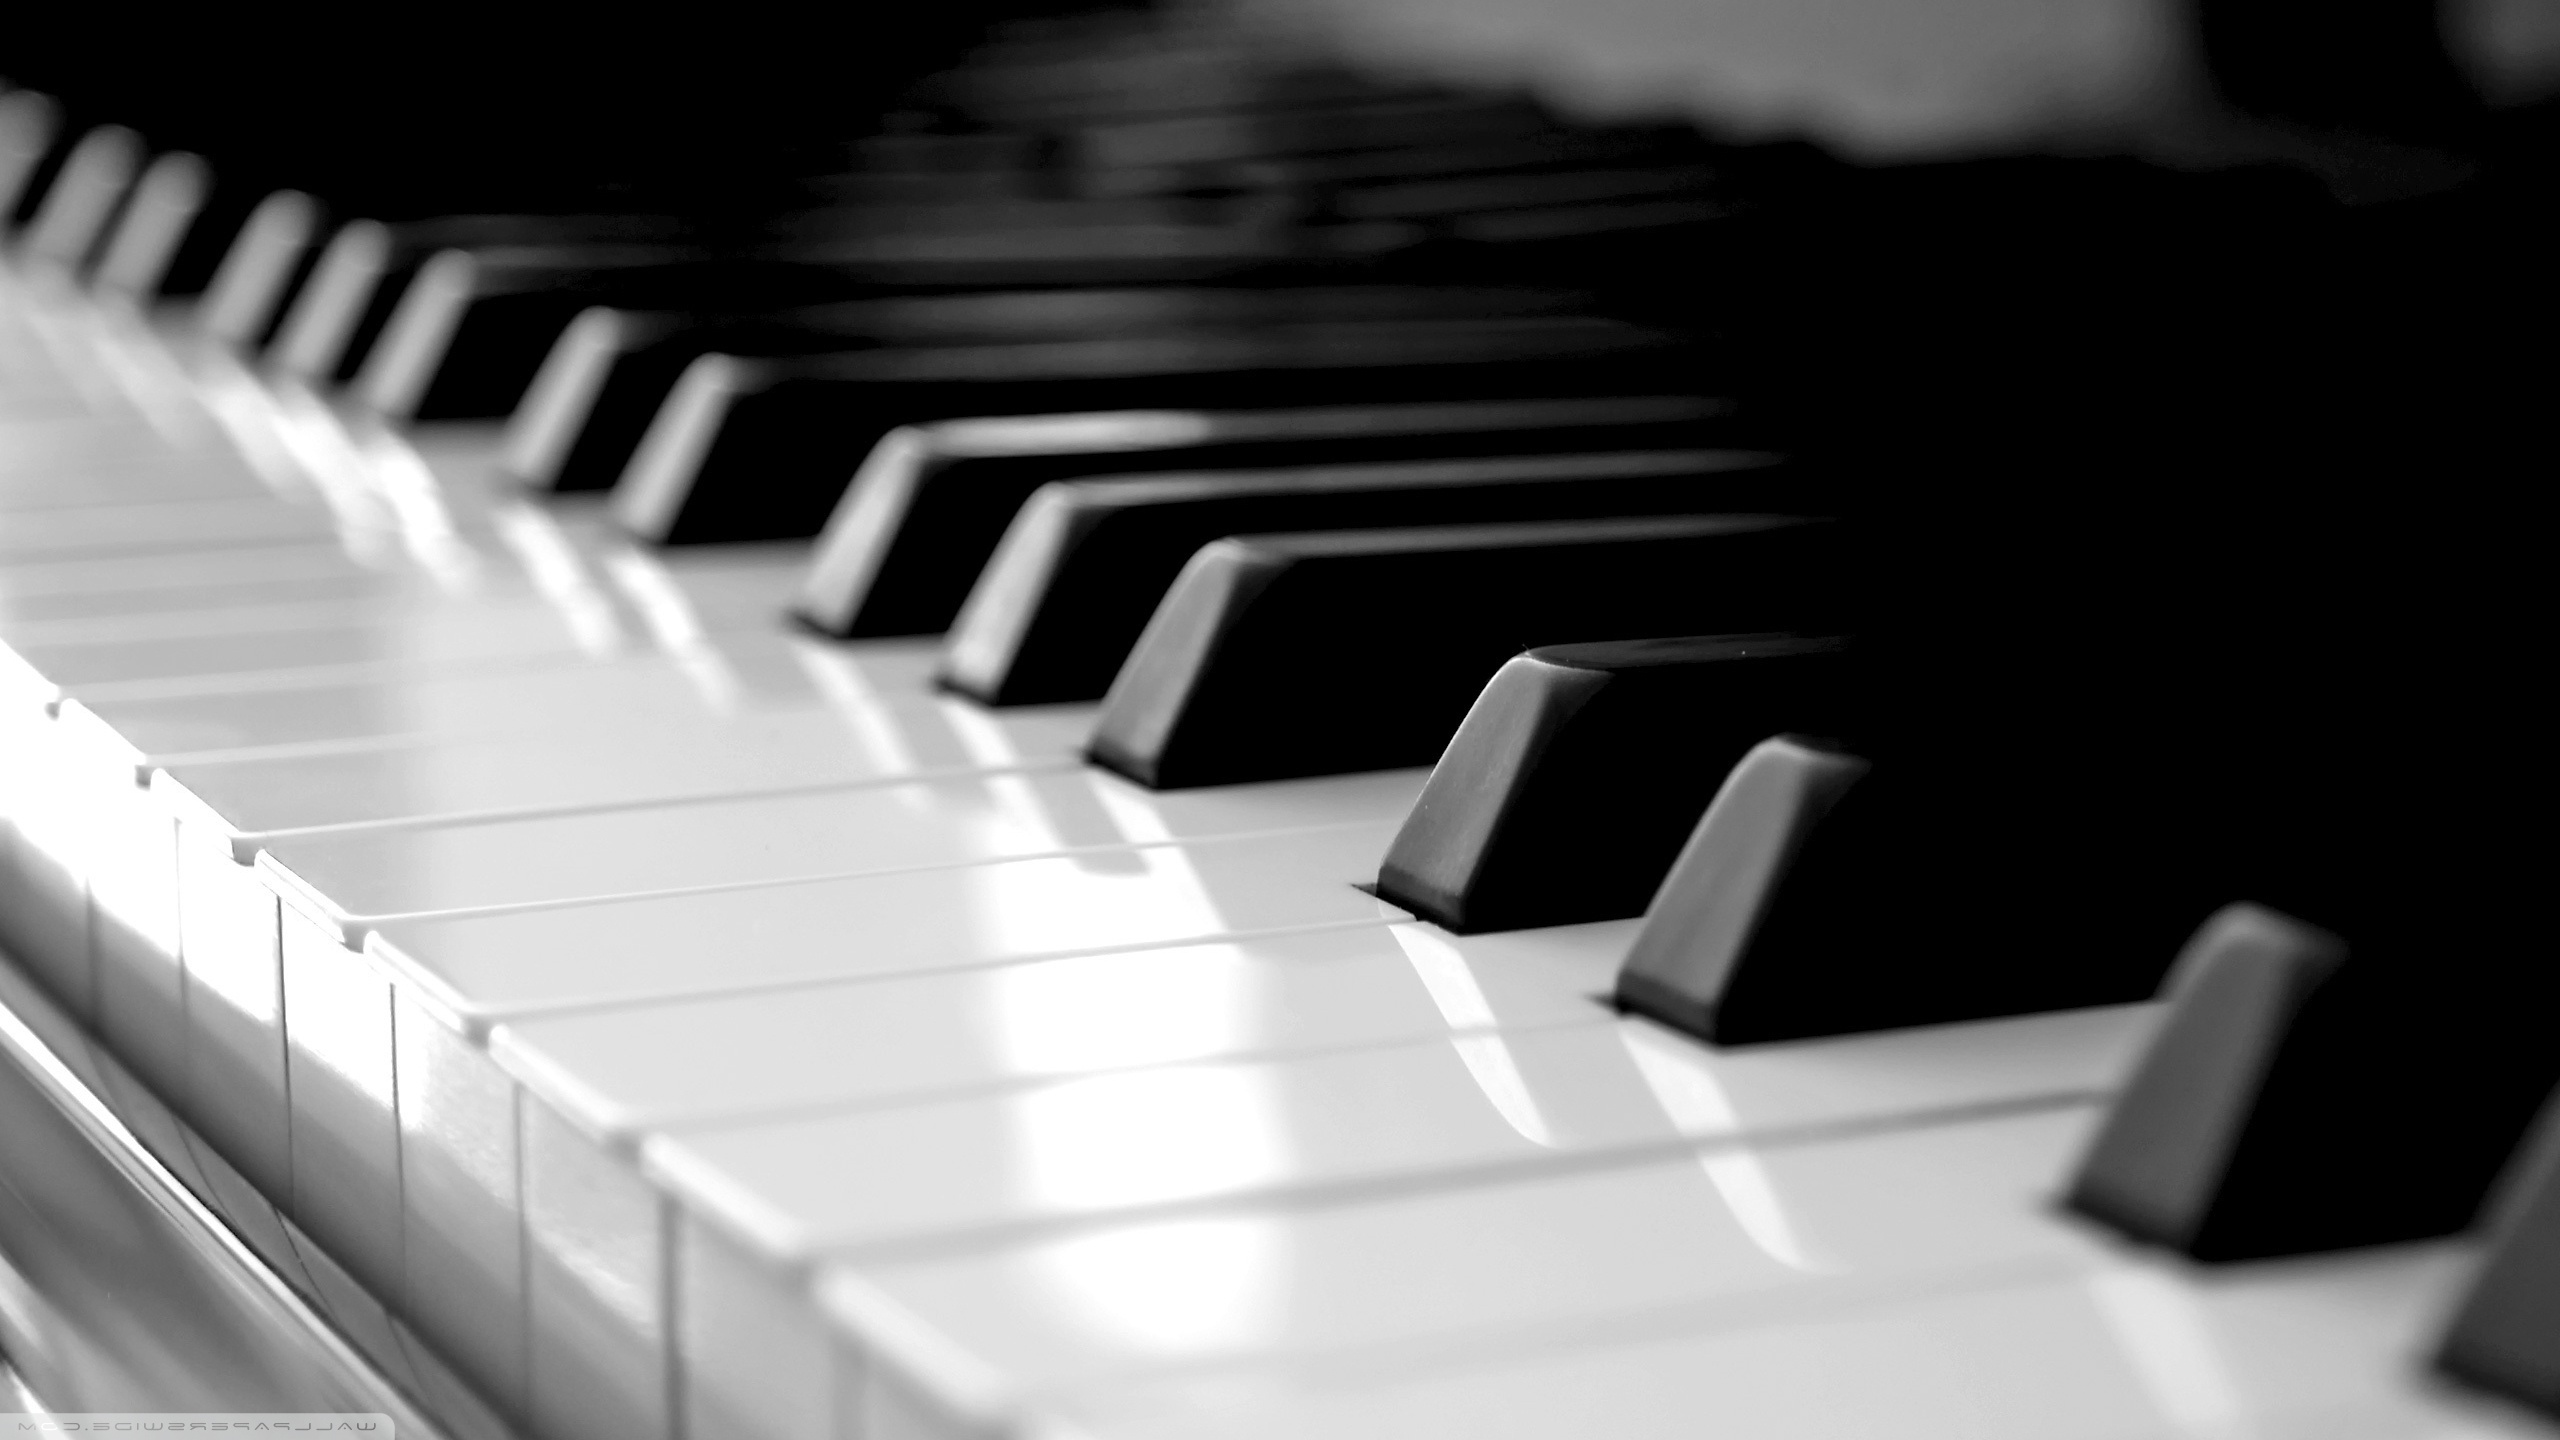 Musical keyboard hd wallpapers